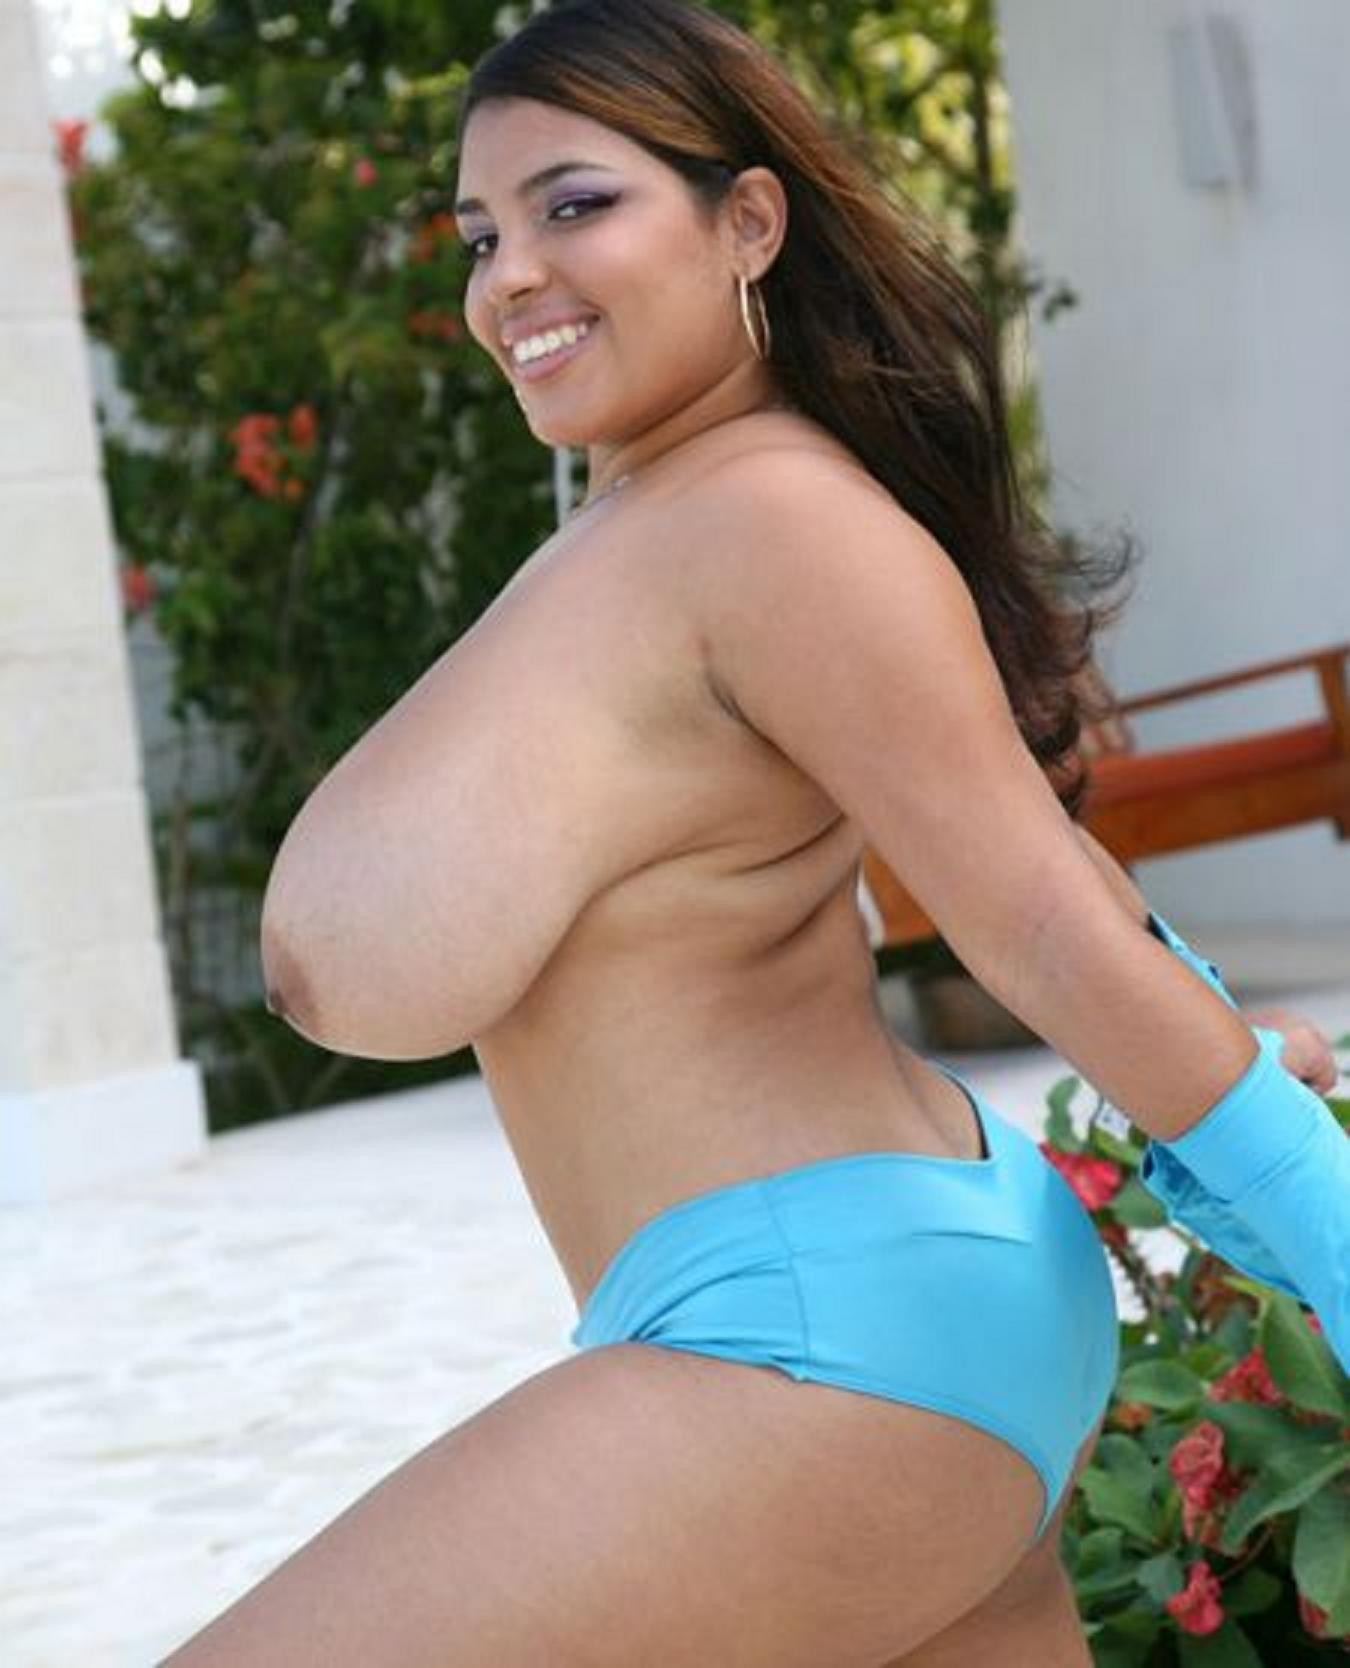 Big tit latina girls tumblr